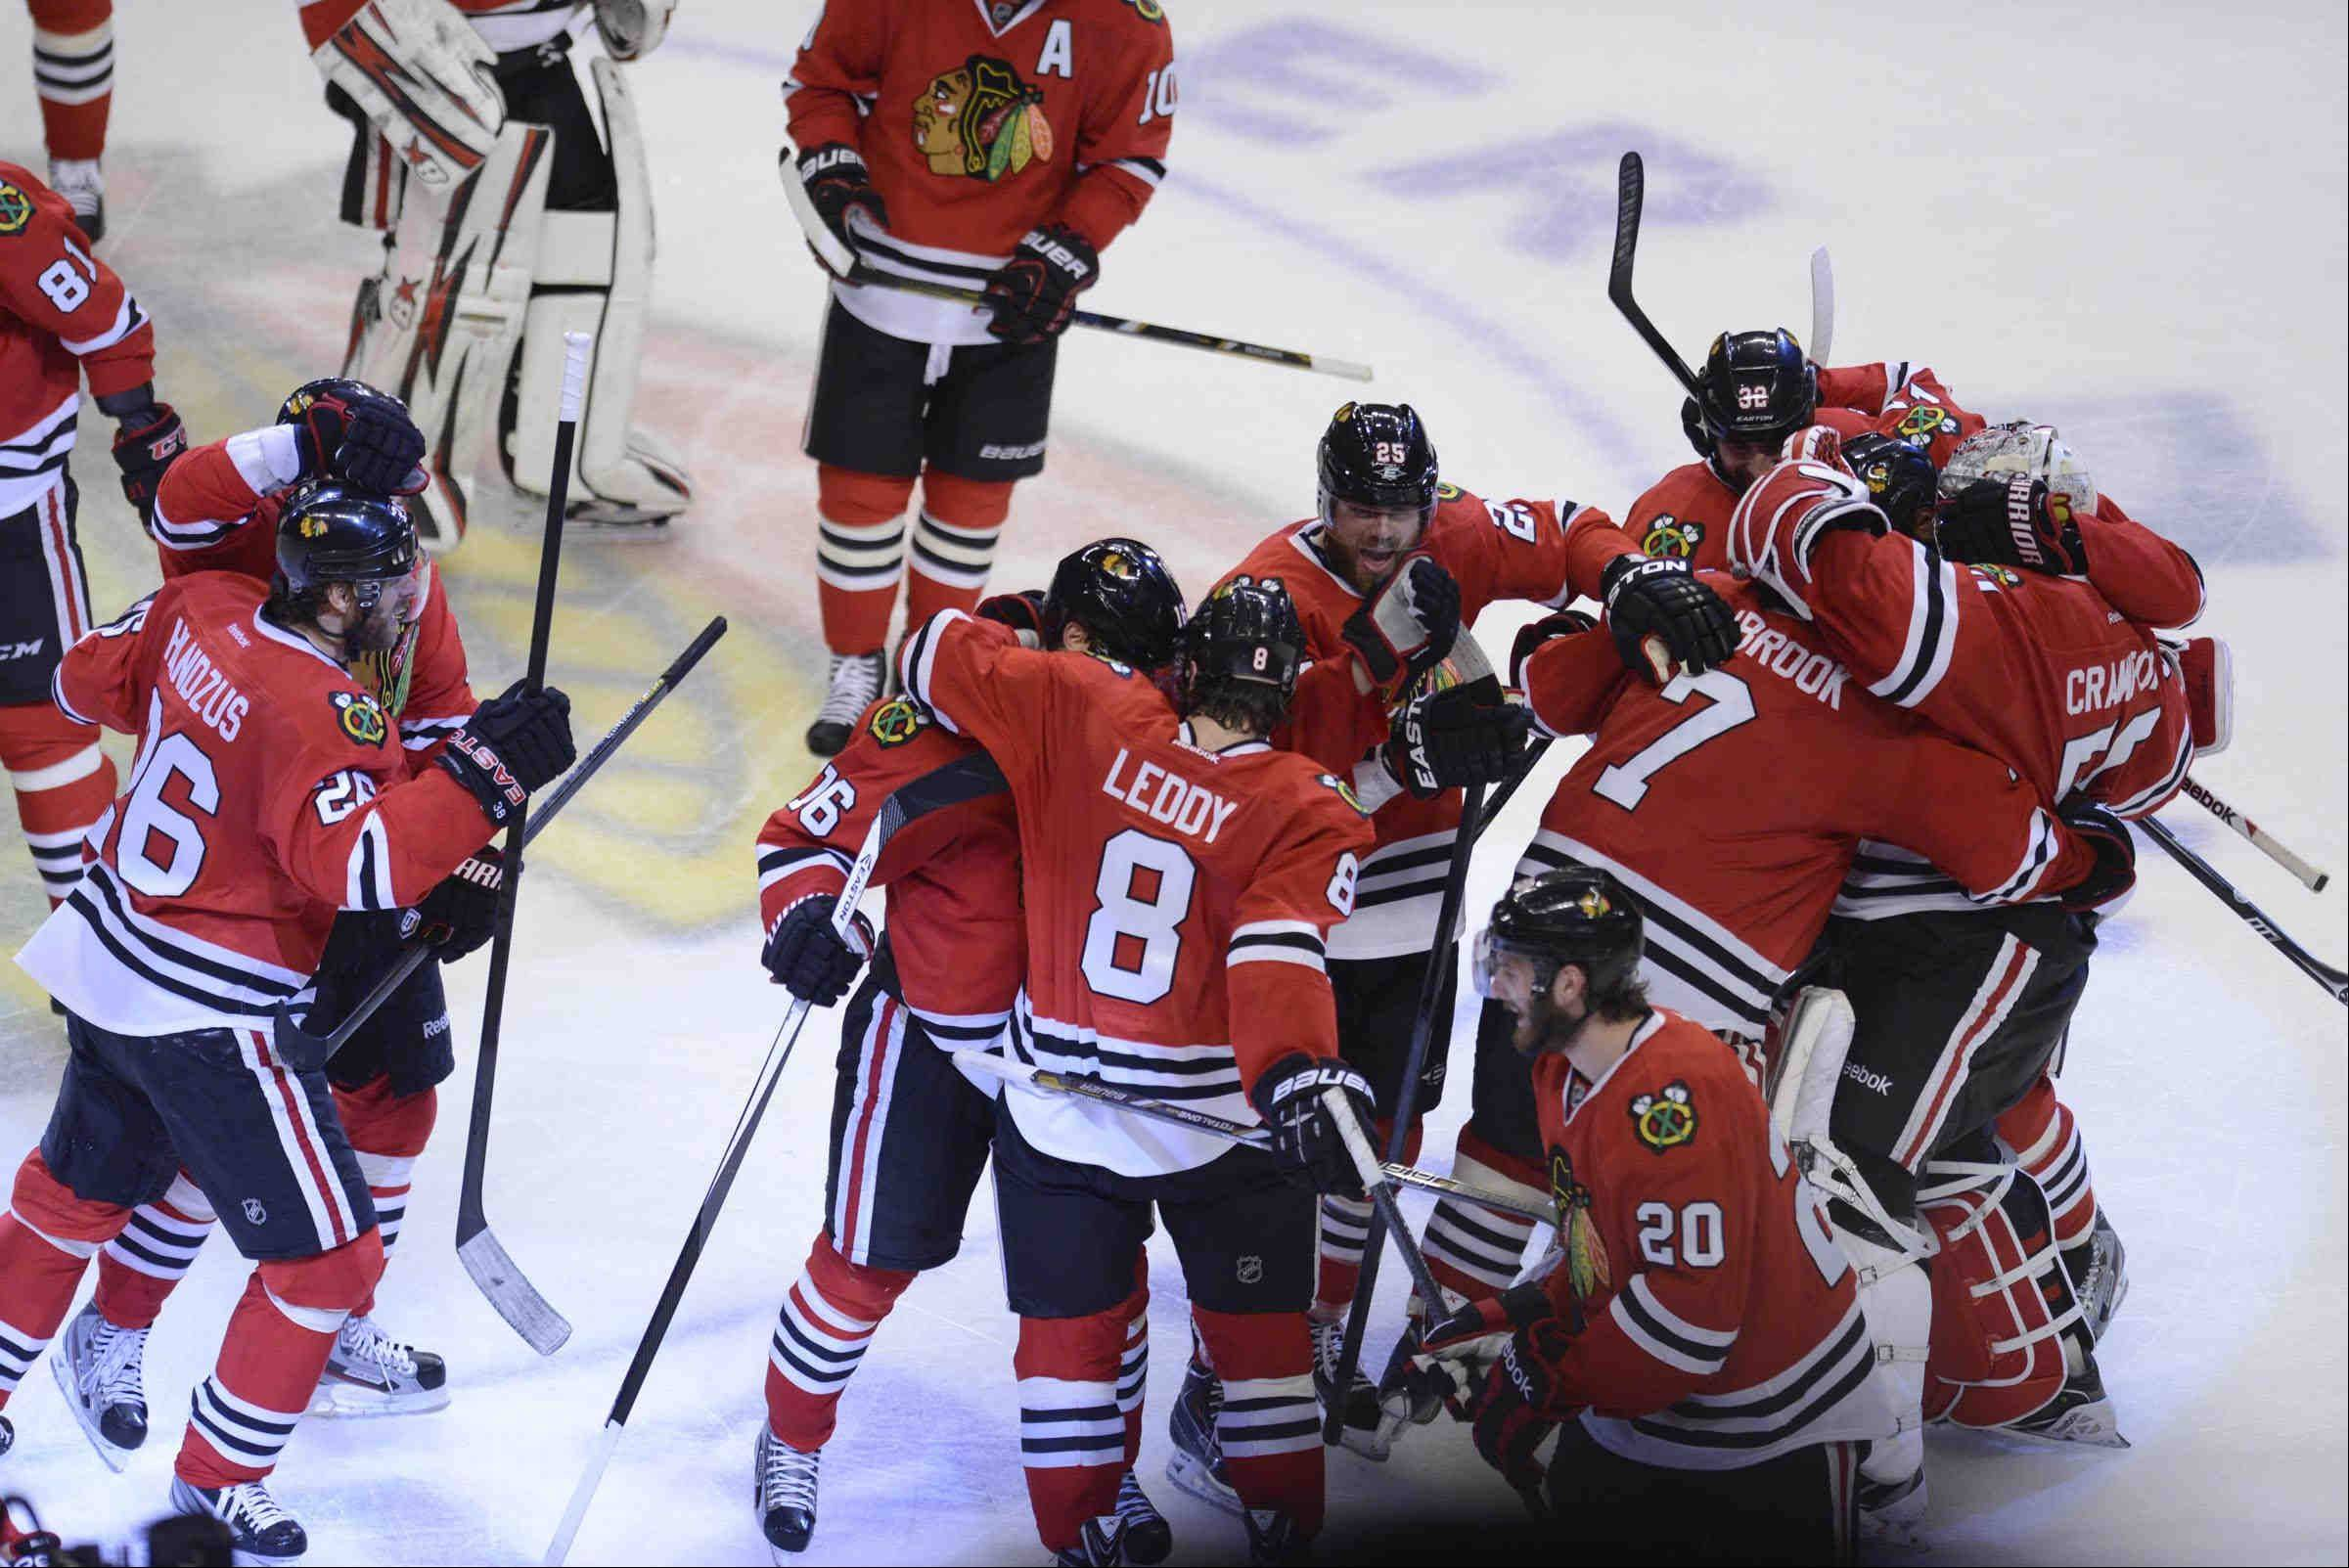 John Starks/jstarks@dailyherald.com � The Chicago Blackhawks celebrate Saturday winning the NHL Western Conference Championship at the United Center in Chicago.